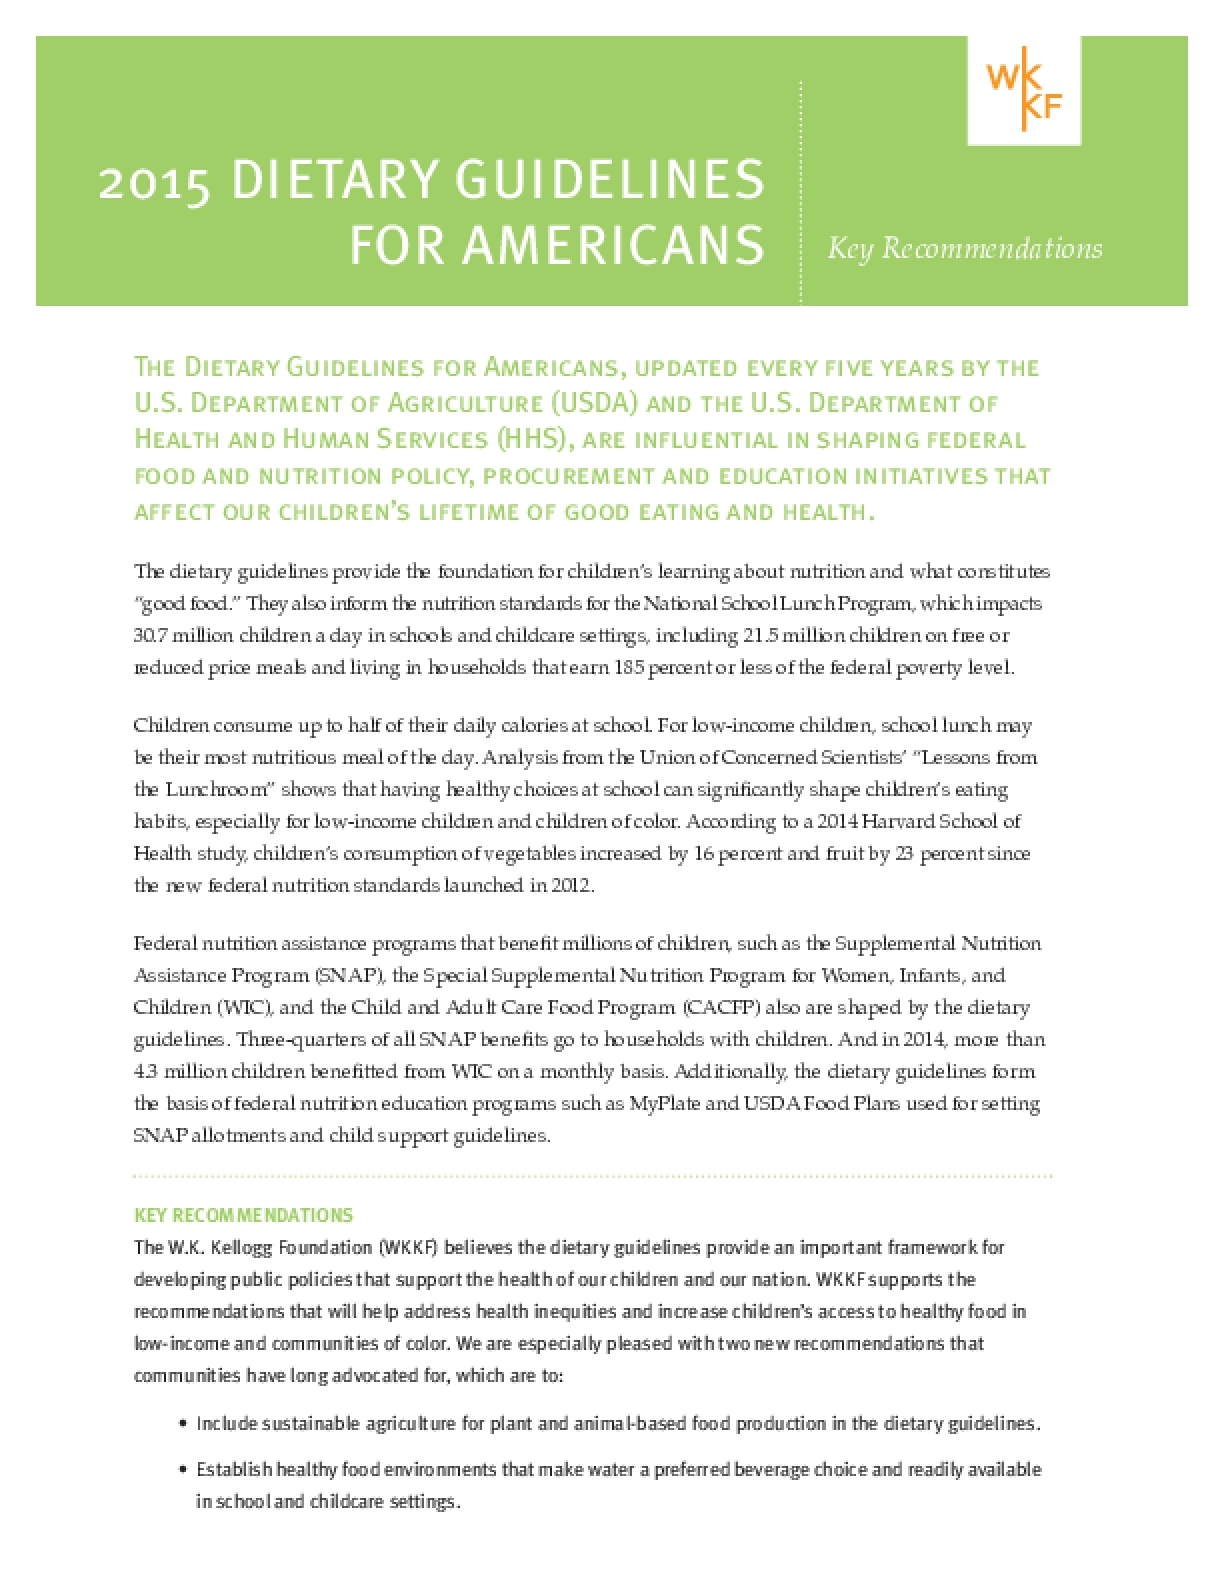 2015 Dietary Guidelines for Americans: Key Recommendations